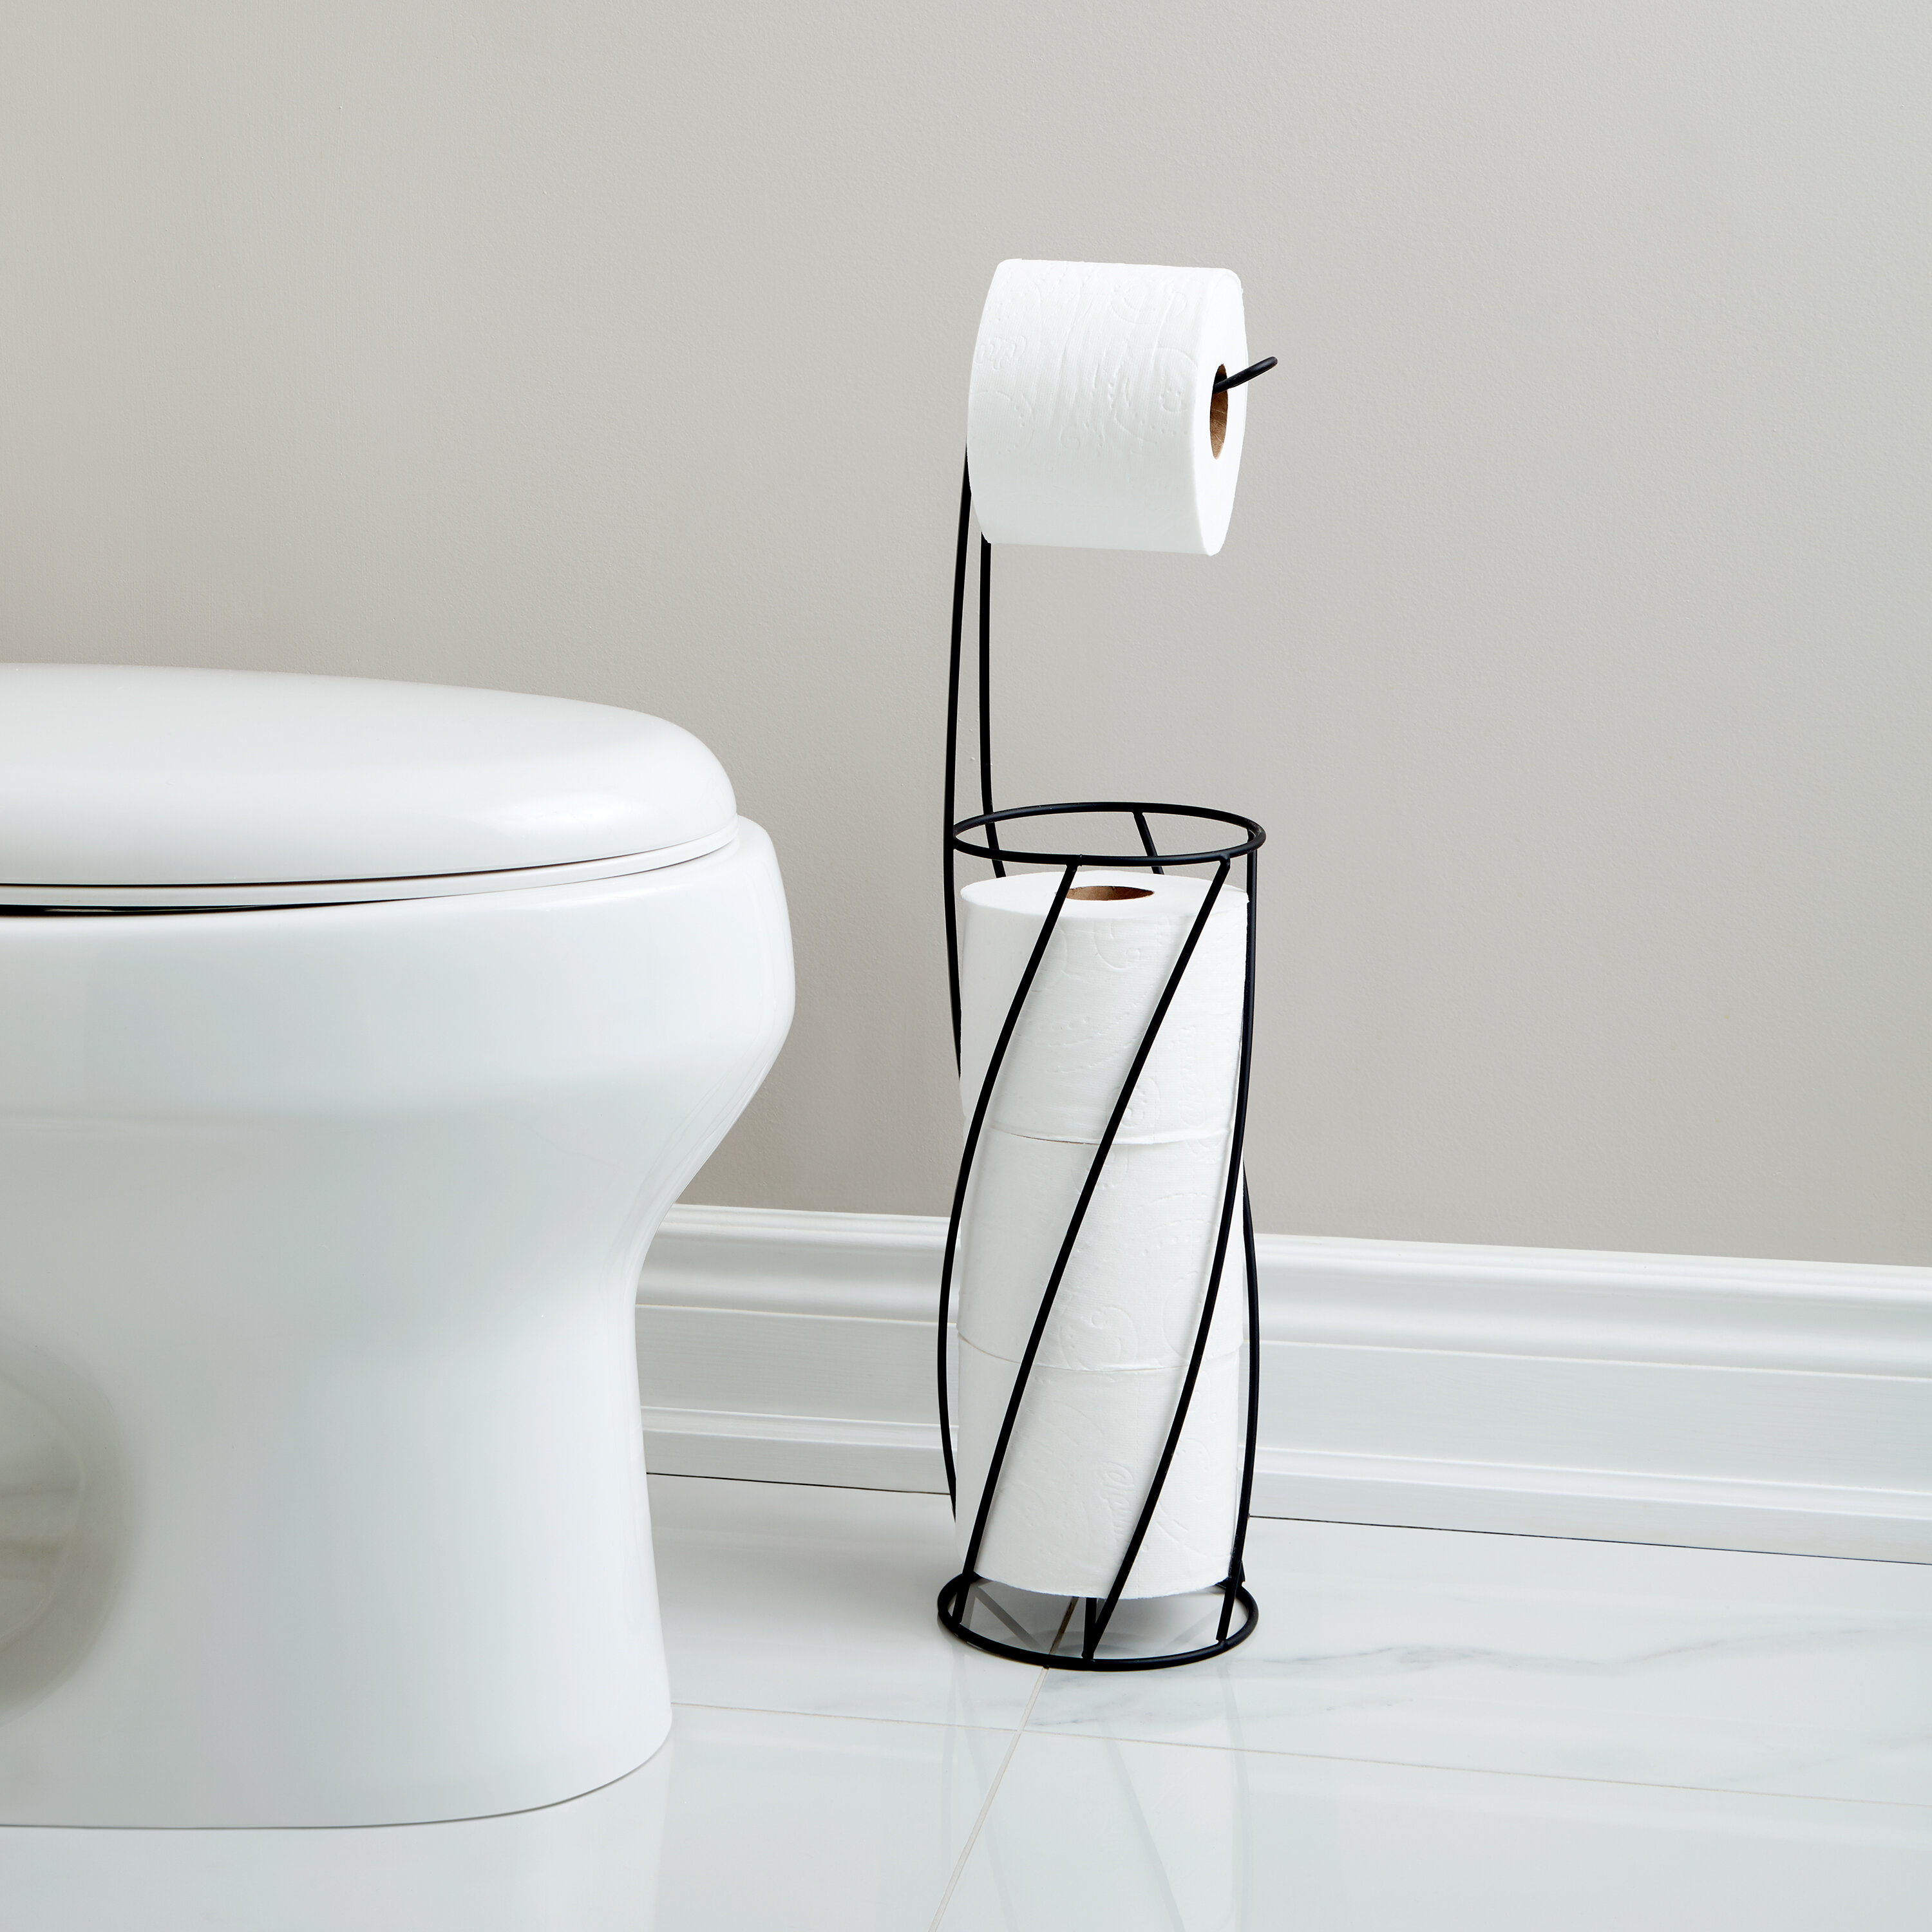 Better Living Products Twist Free Standing Toilet Paper Holder Reviews Wayfair